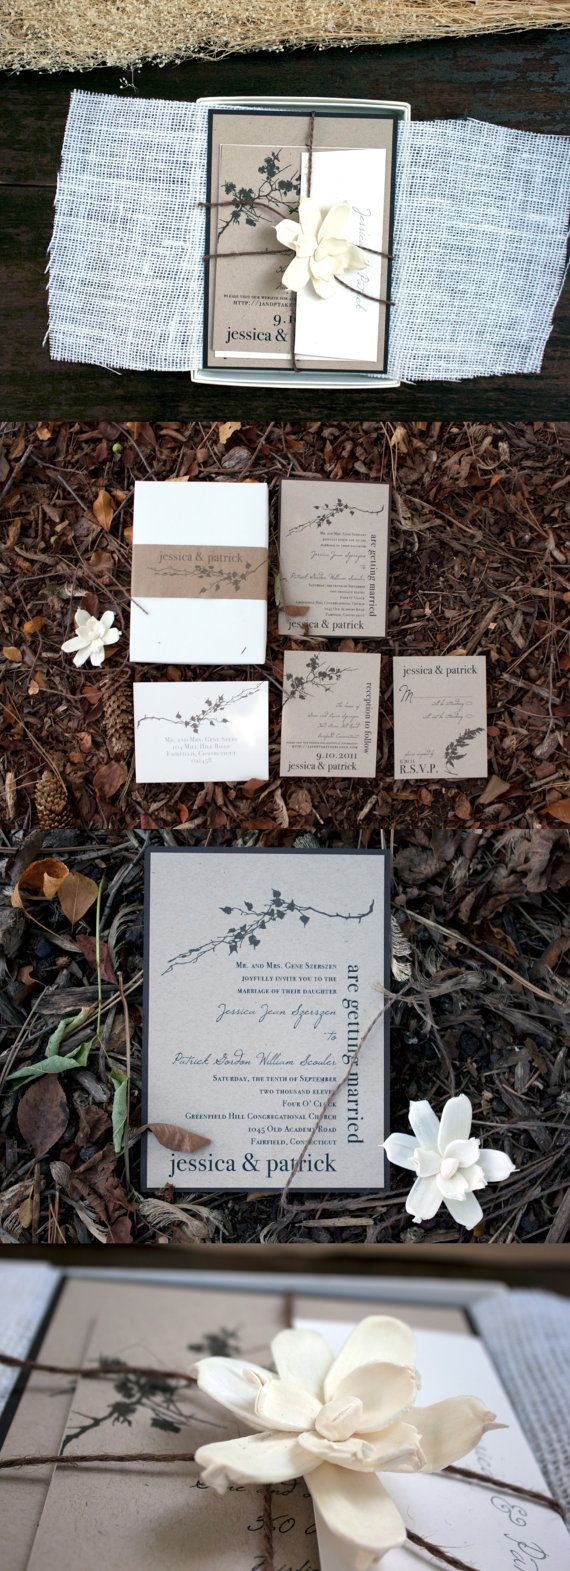 Ivory Romance - Rustic, Chic, Elegant Boxed Wedding Invitation With Burlap, Flower - Purchase for a Sample. $14.50, via Etsy.